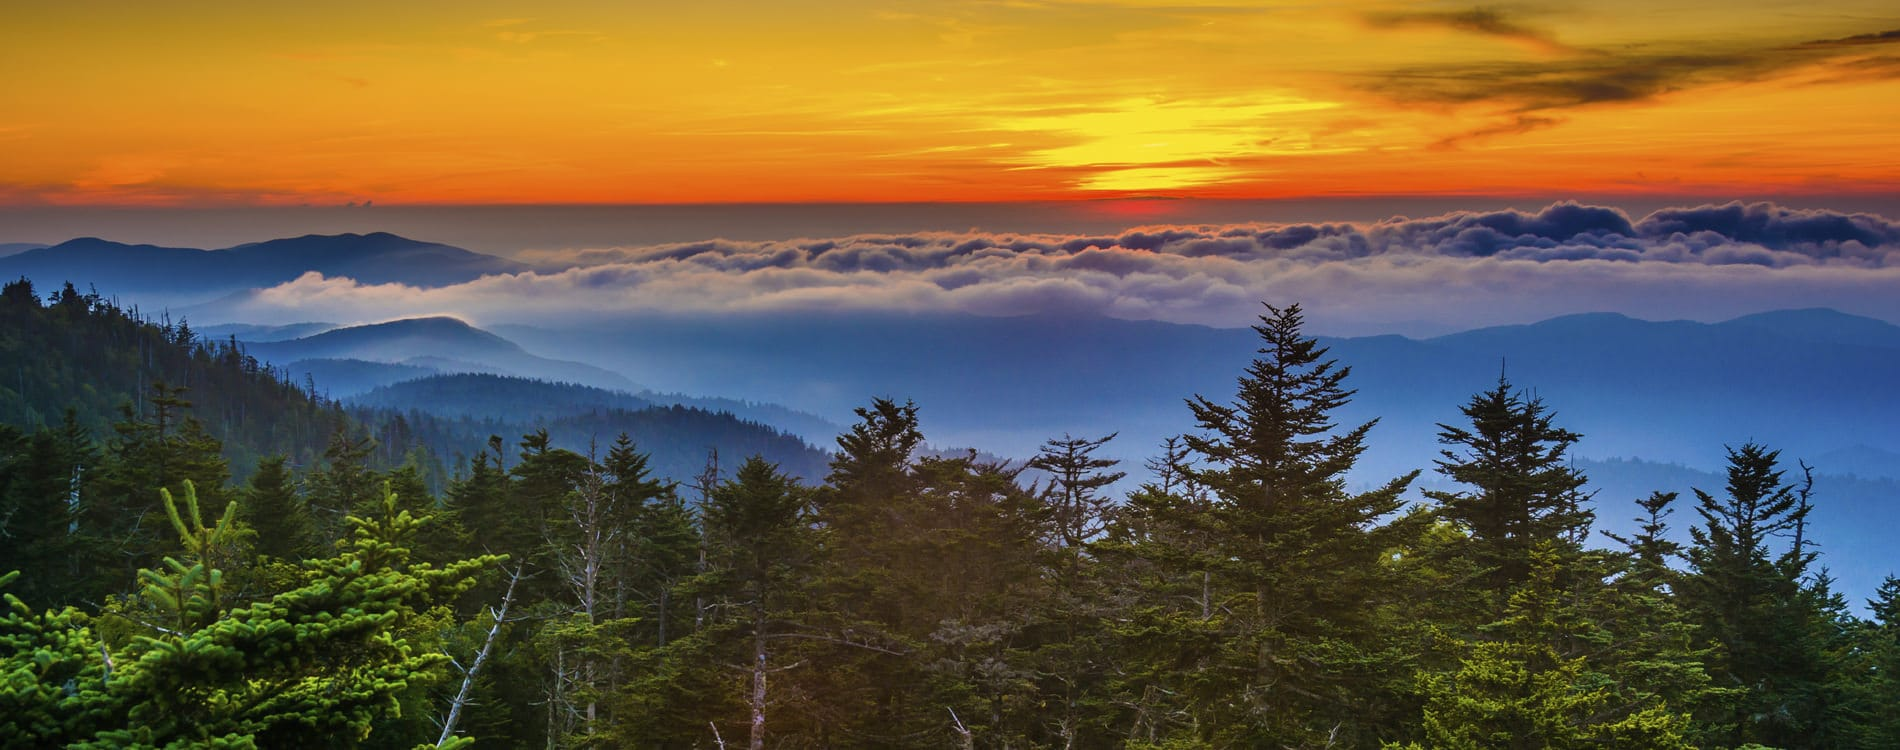 Sunset at Clingmans Dome Observation Point in Blue Ridge Mountains Gatlinburg